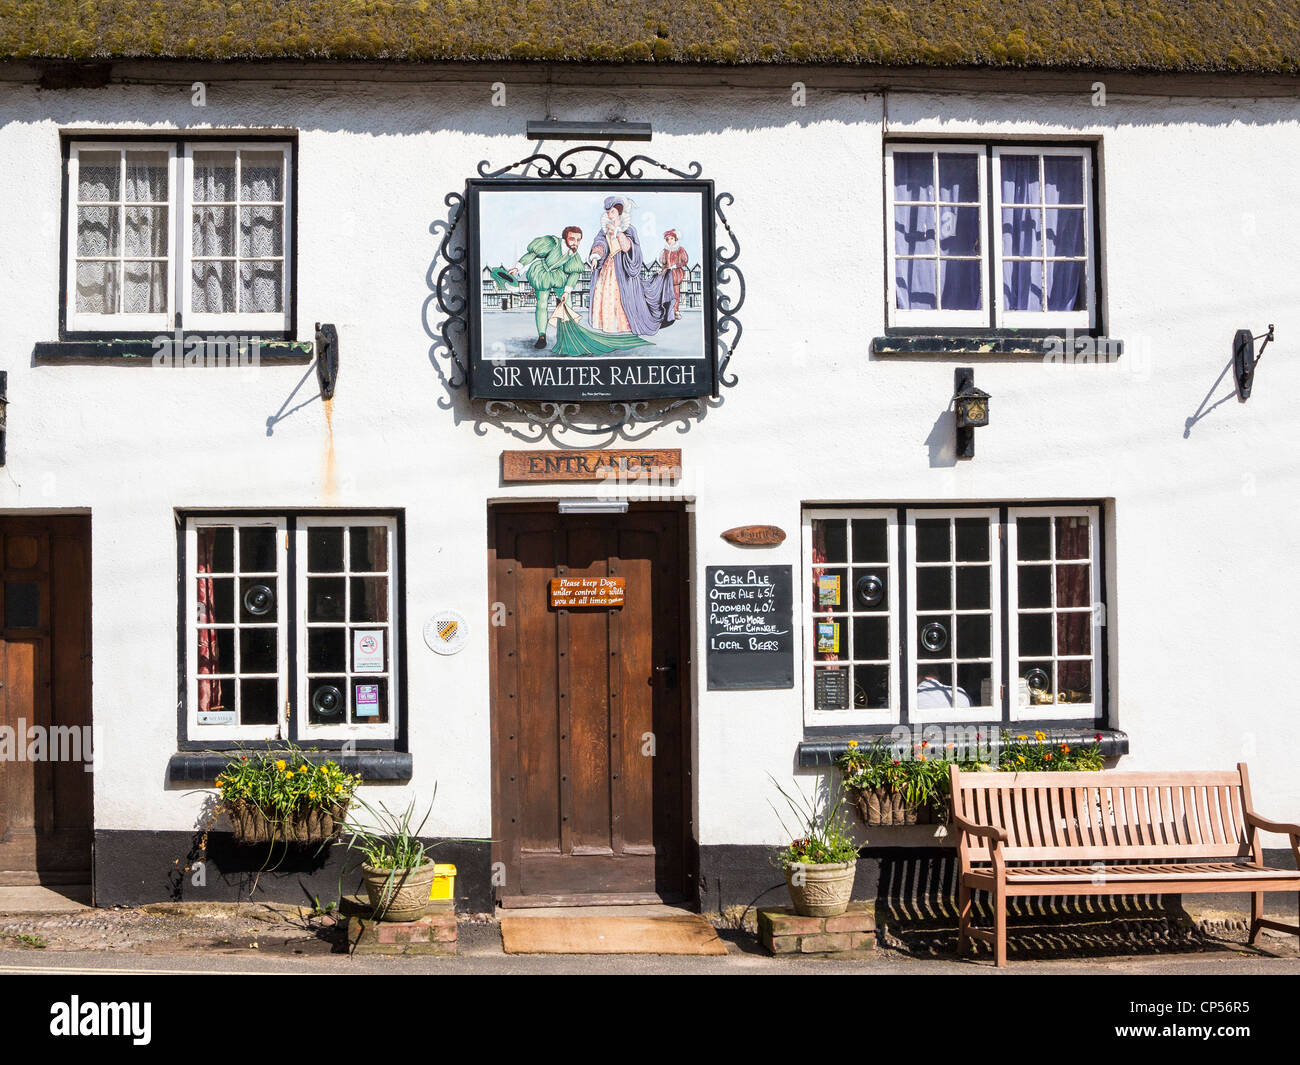 Sir Walter Raleigh Public House in the village of East Budleigh (his birth place), Devon, England. - Stock Image